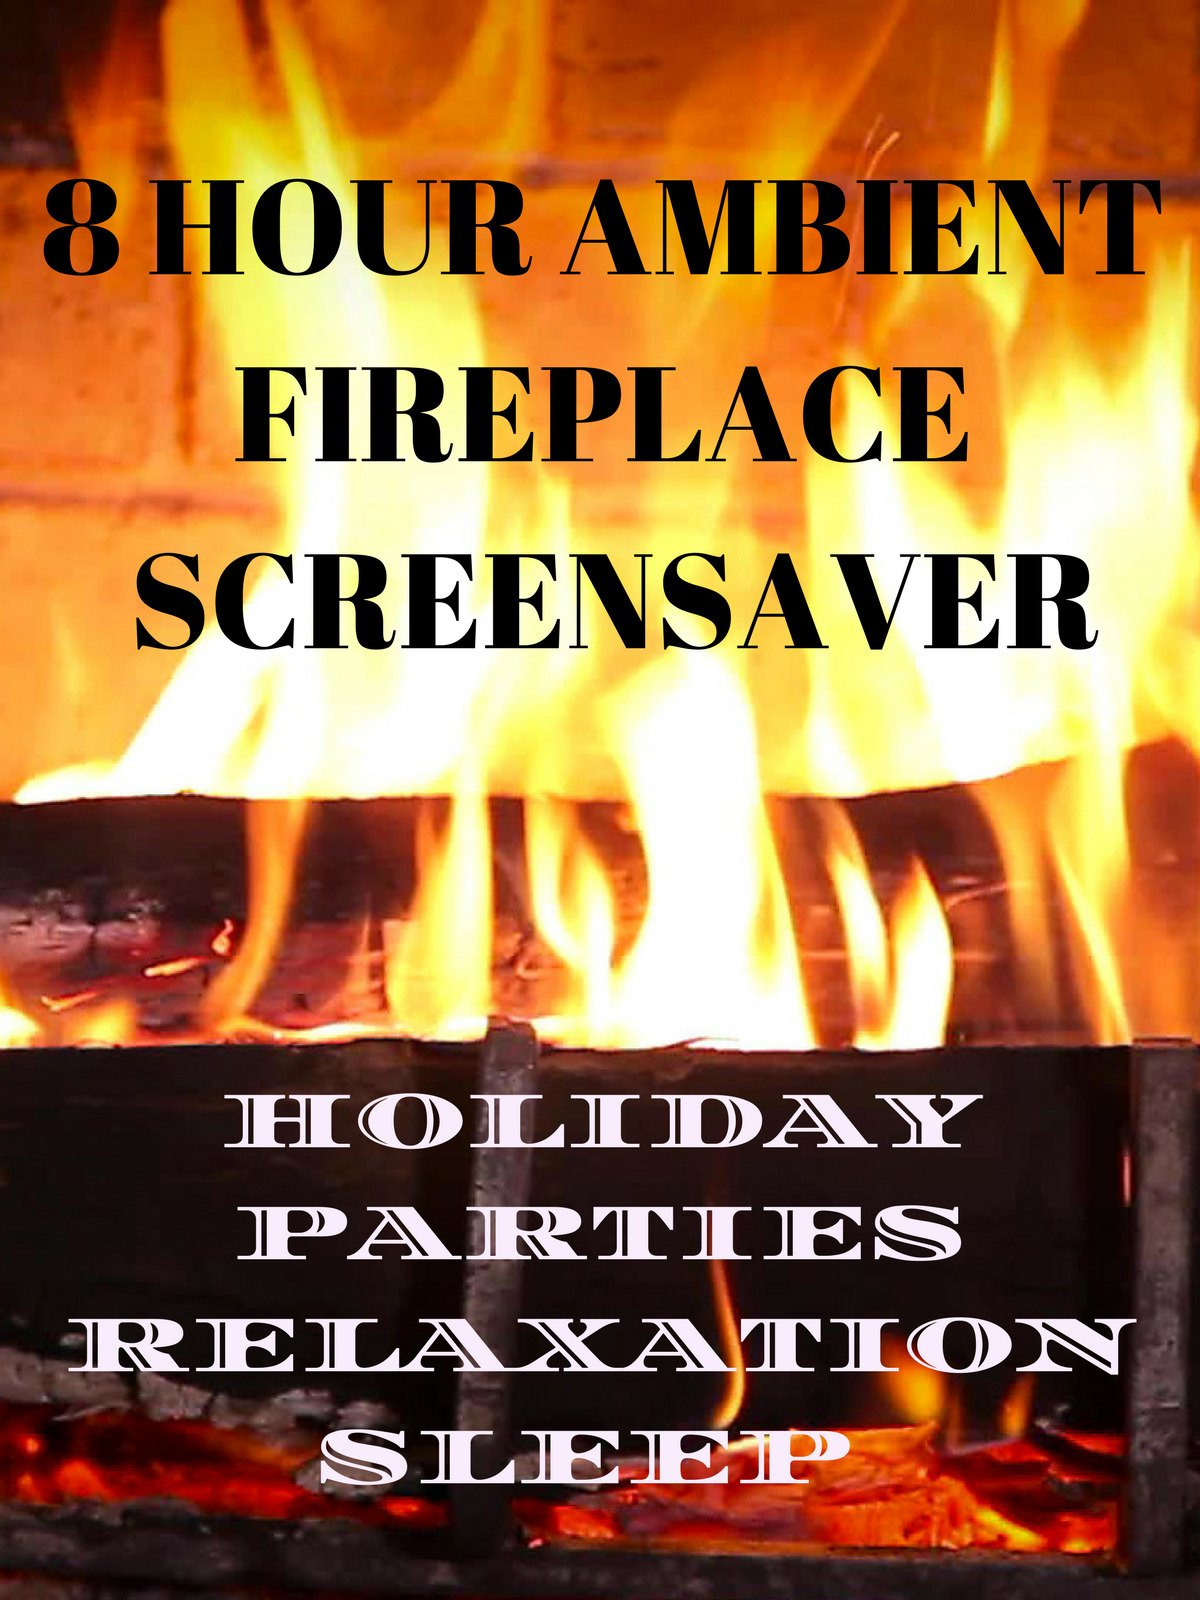 Ambient fireplace 8 hour screensaver holiday parties relaxation sleep